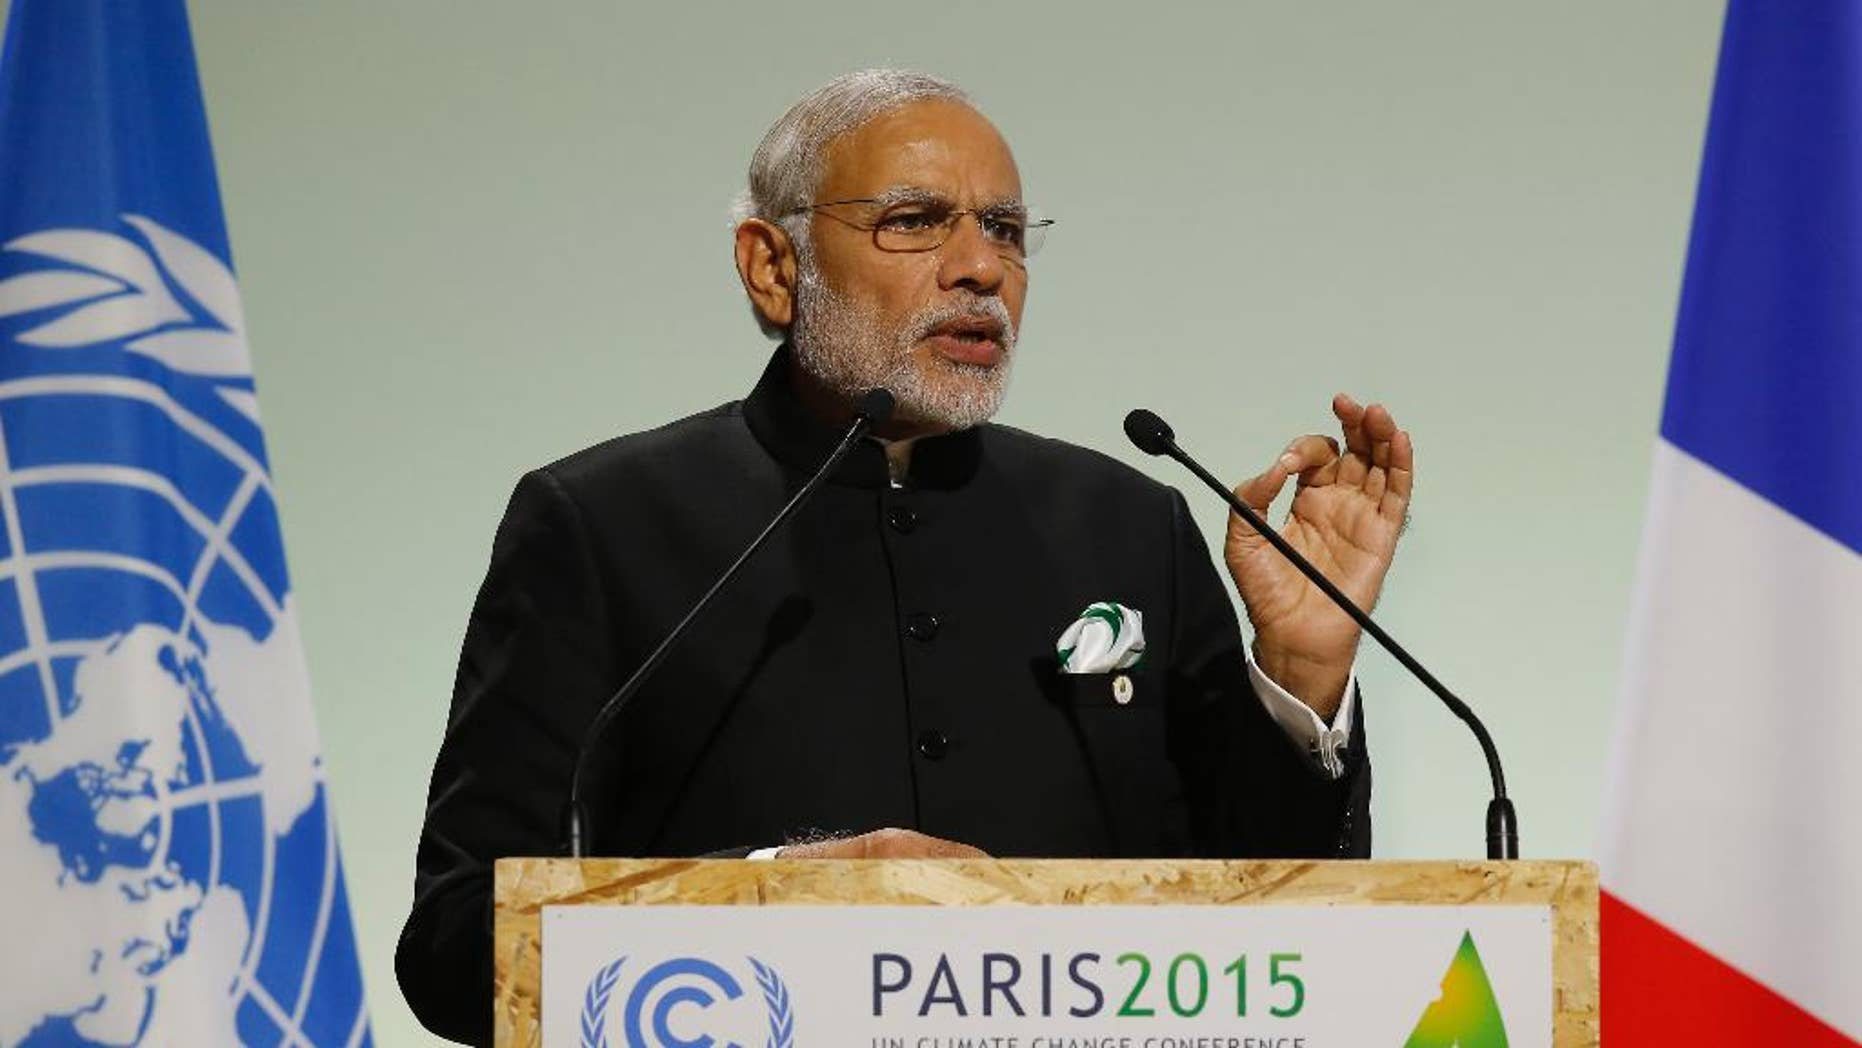 FILE- In this Nov. 30, 2015 file photo, India's Prime Minister Narendra Modi addresses world leaders at the COP21, United Nations Climate Change Conference, in Le Bourget, outside Paris. India's leader says his country will ratify the Paris Agreement on climate change early next month. Modi said Sunday that his government will ratify the agreement Oct. 2, coinciding with the birth anniversary of India's independence leader Mohandas Gandhi. (AP Photo/Michel Euler, File)